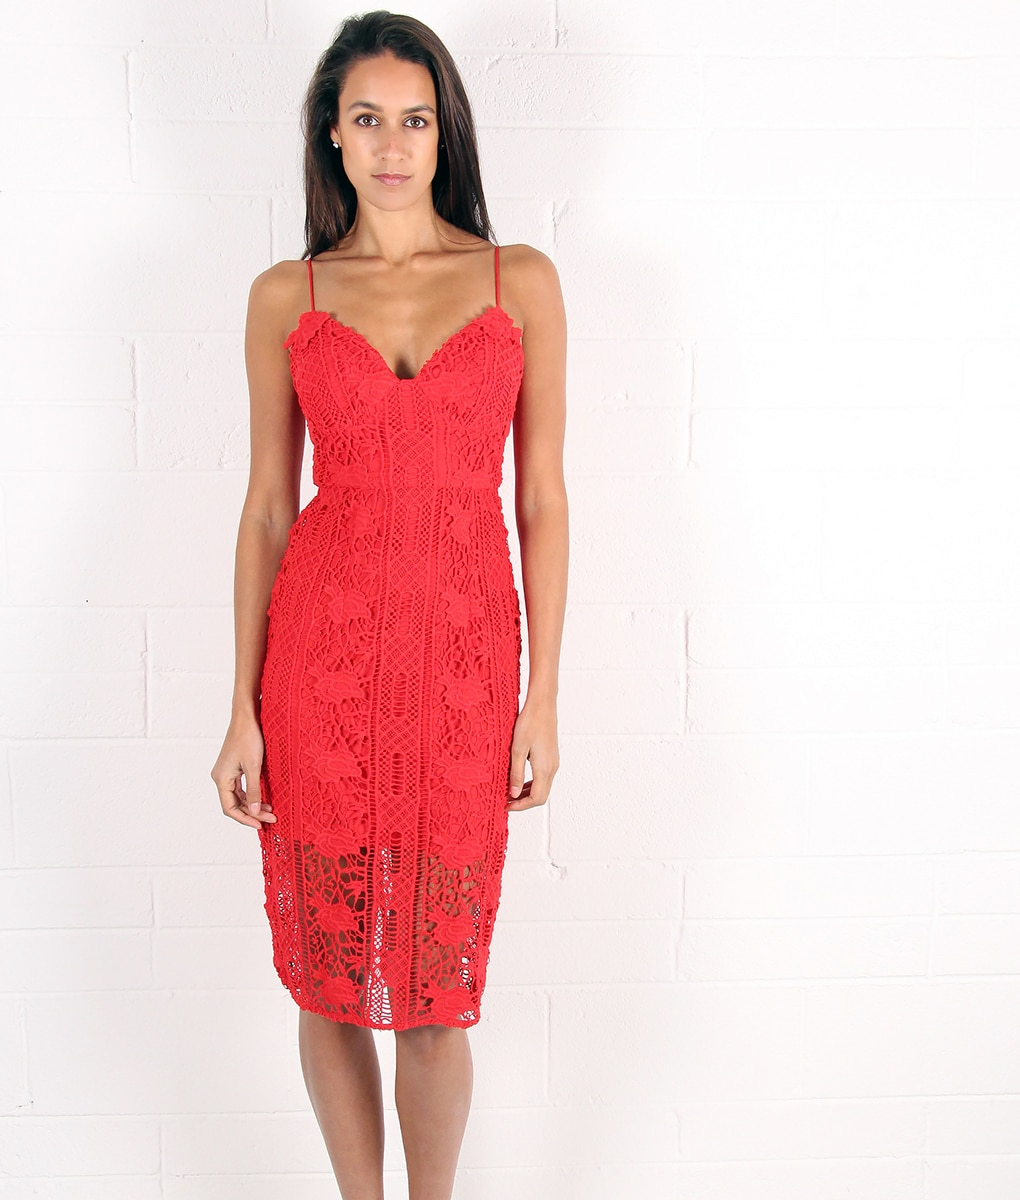 alila-red-crochet-dress-for-wedding-by-lumier-by-bariano-front